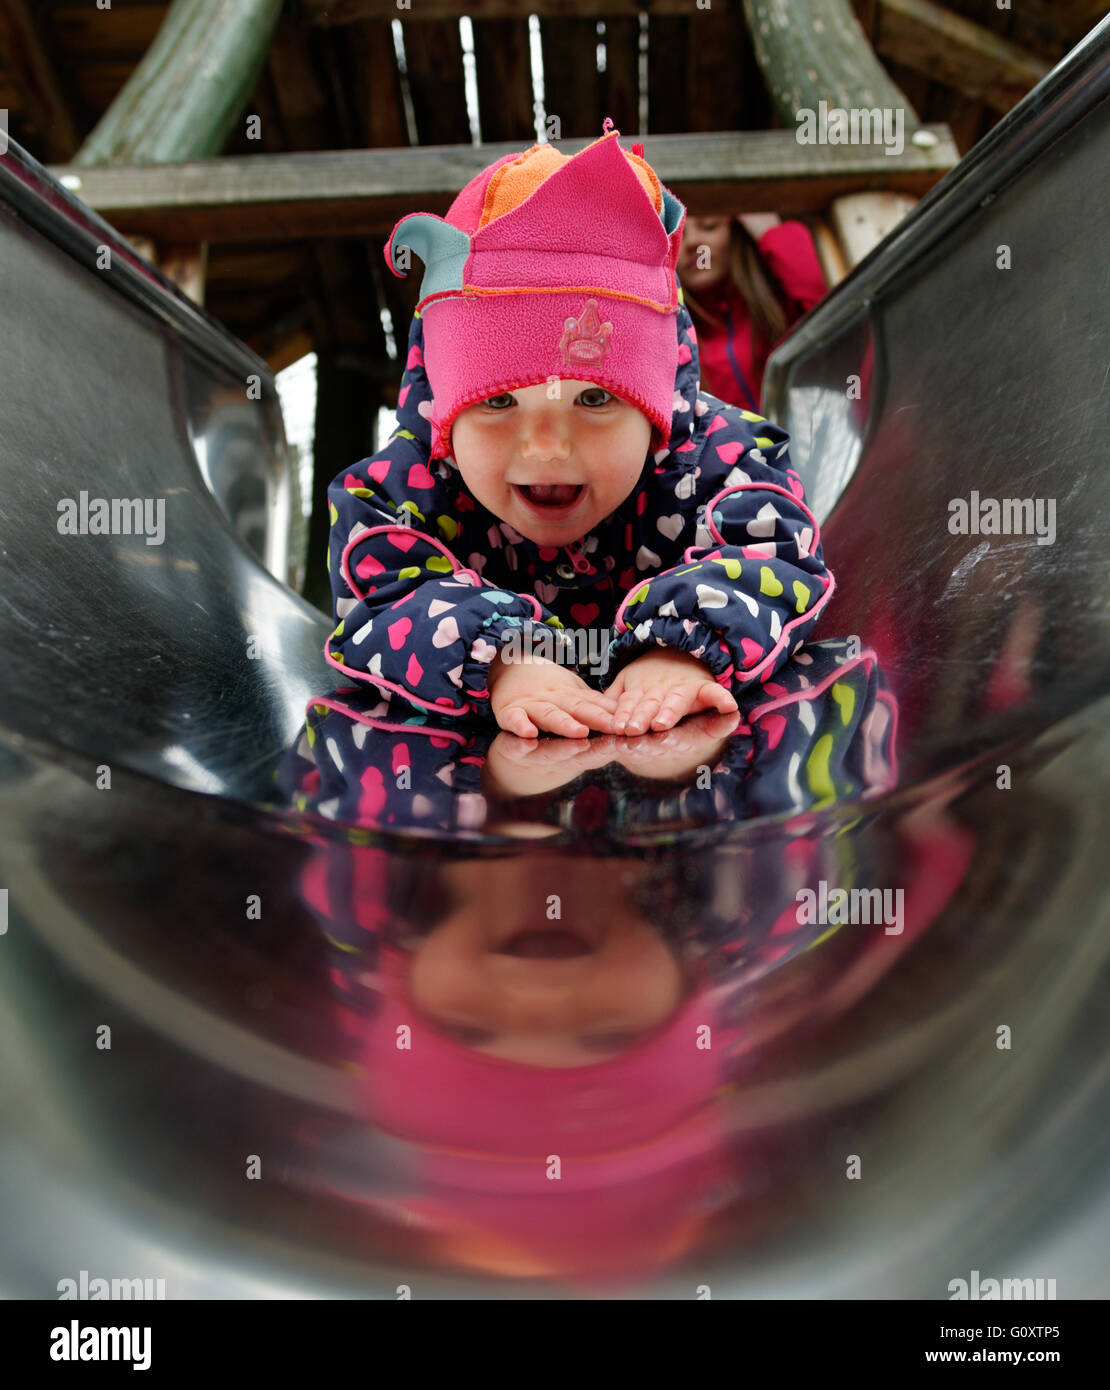 A smiling young girl (18 months old) descending a slide - Stock Image